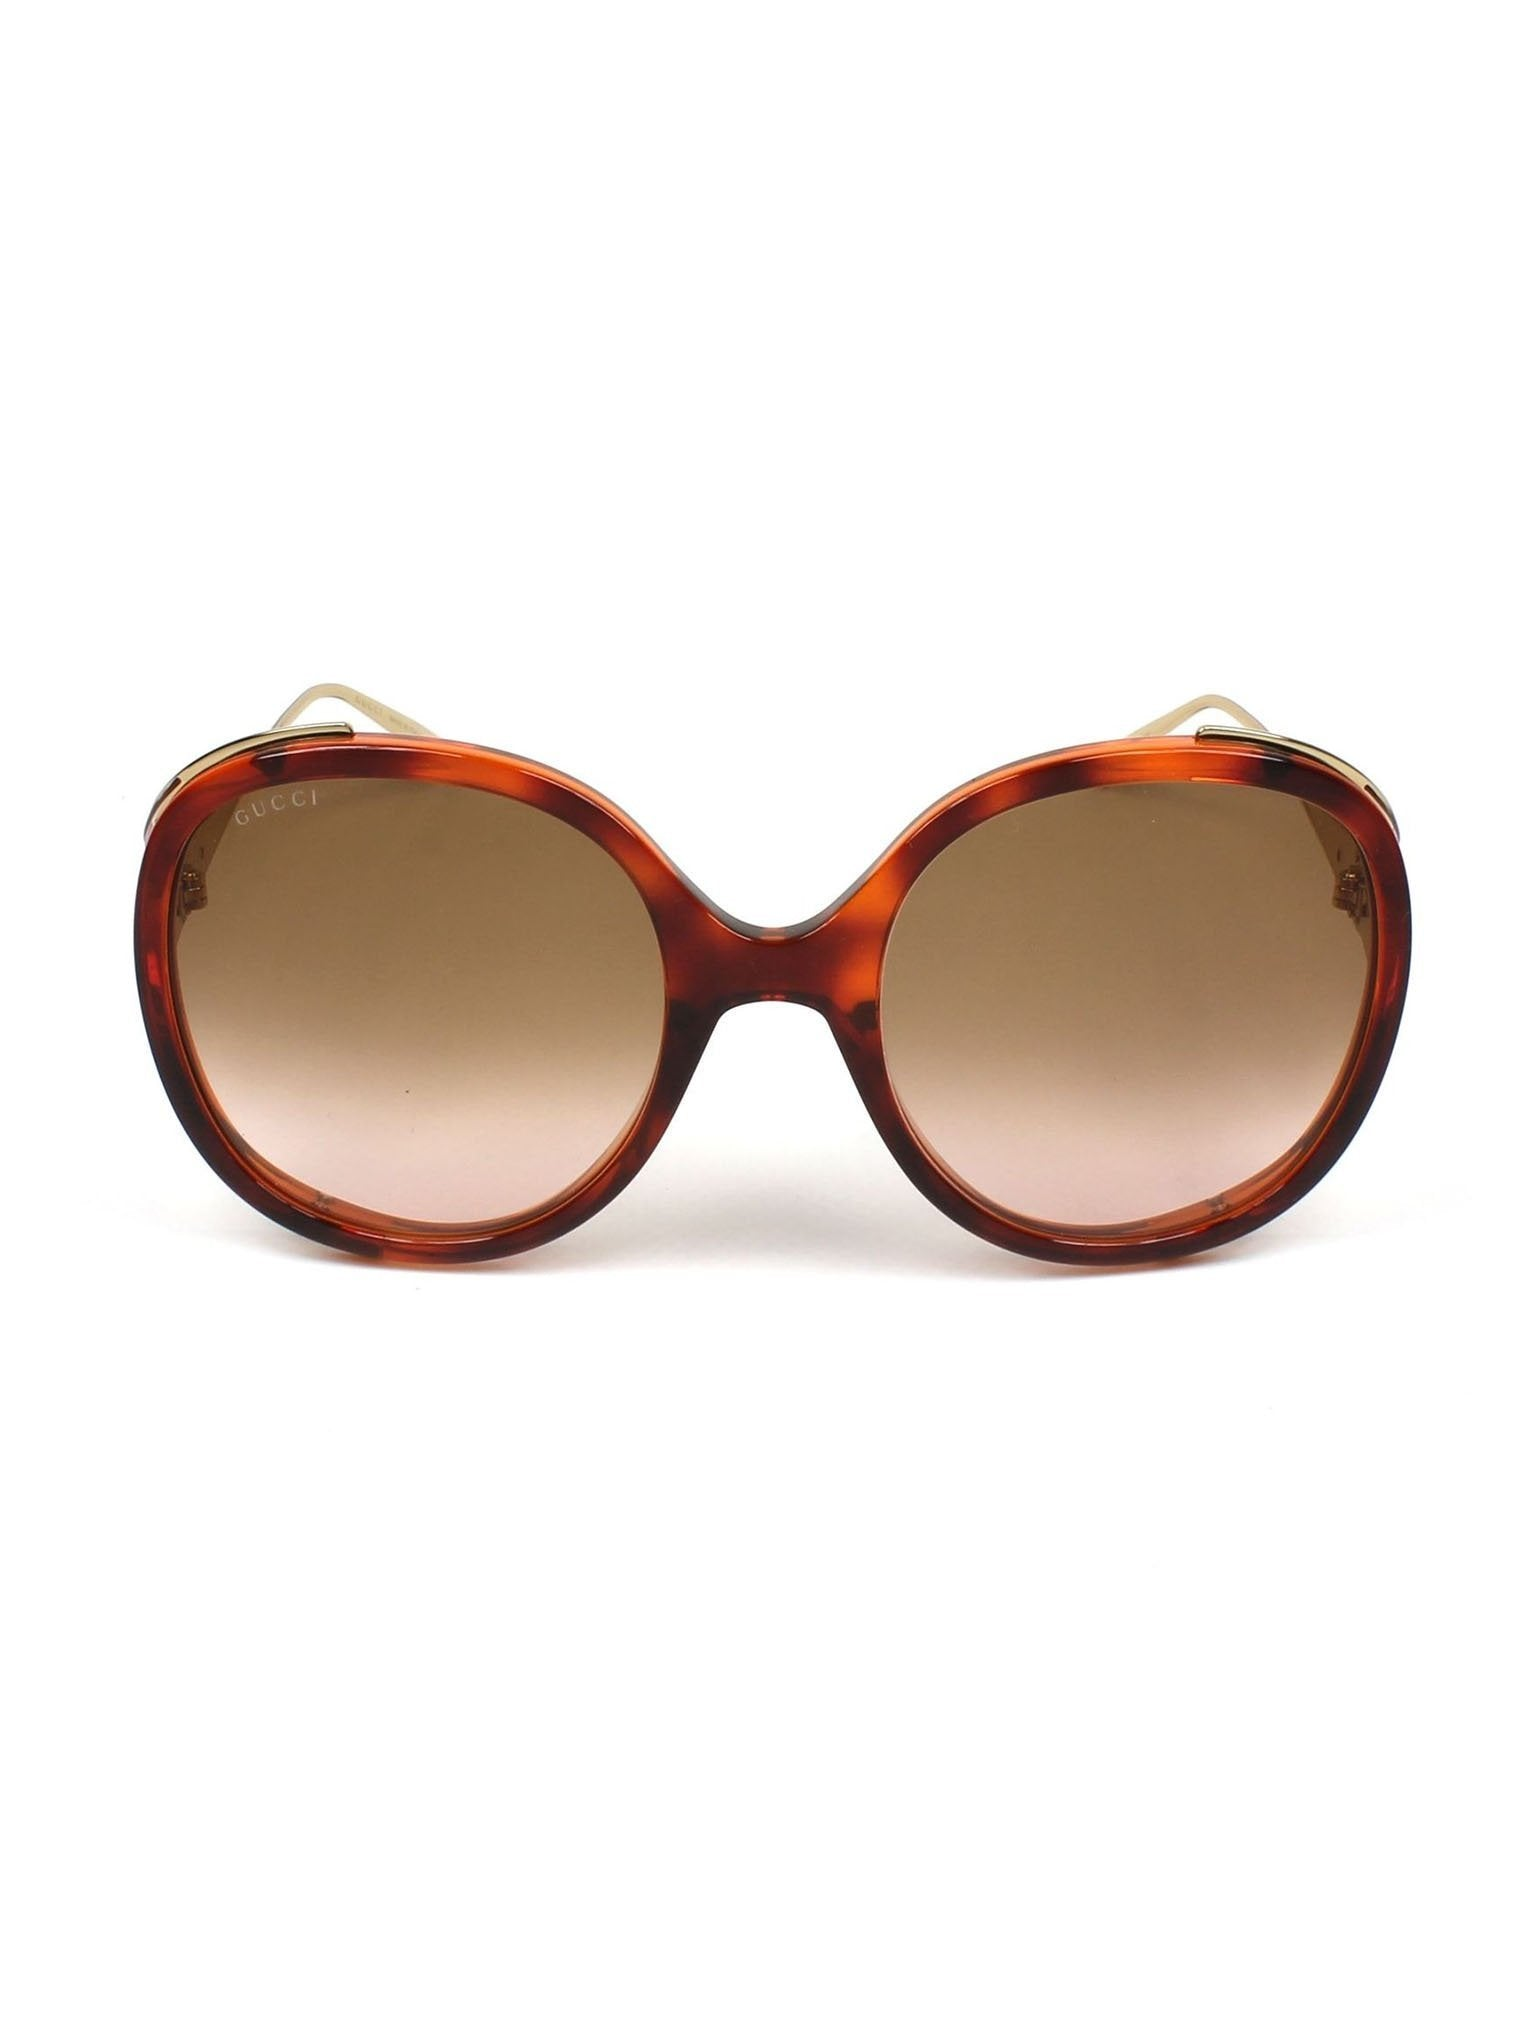 0bbc3a98ace GG0226S-005 Round Sunglasses - Havana   Gold   Light Brown Gradient ...